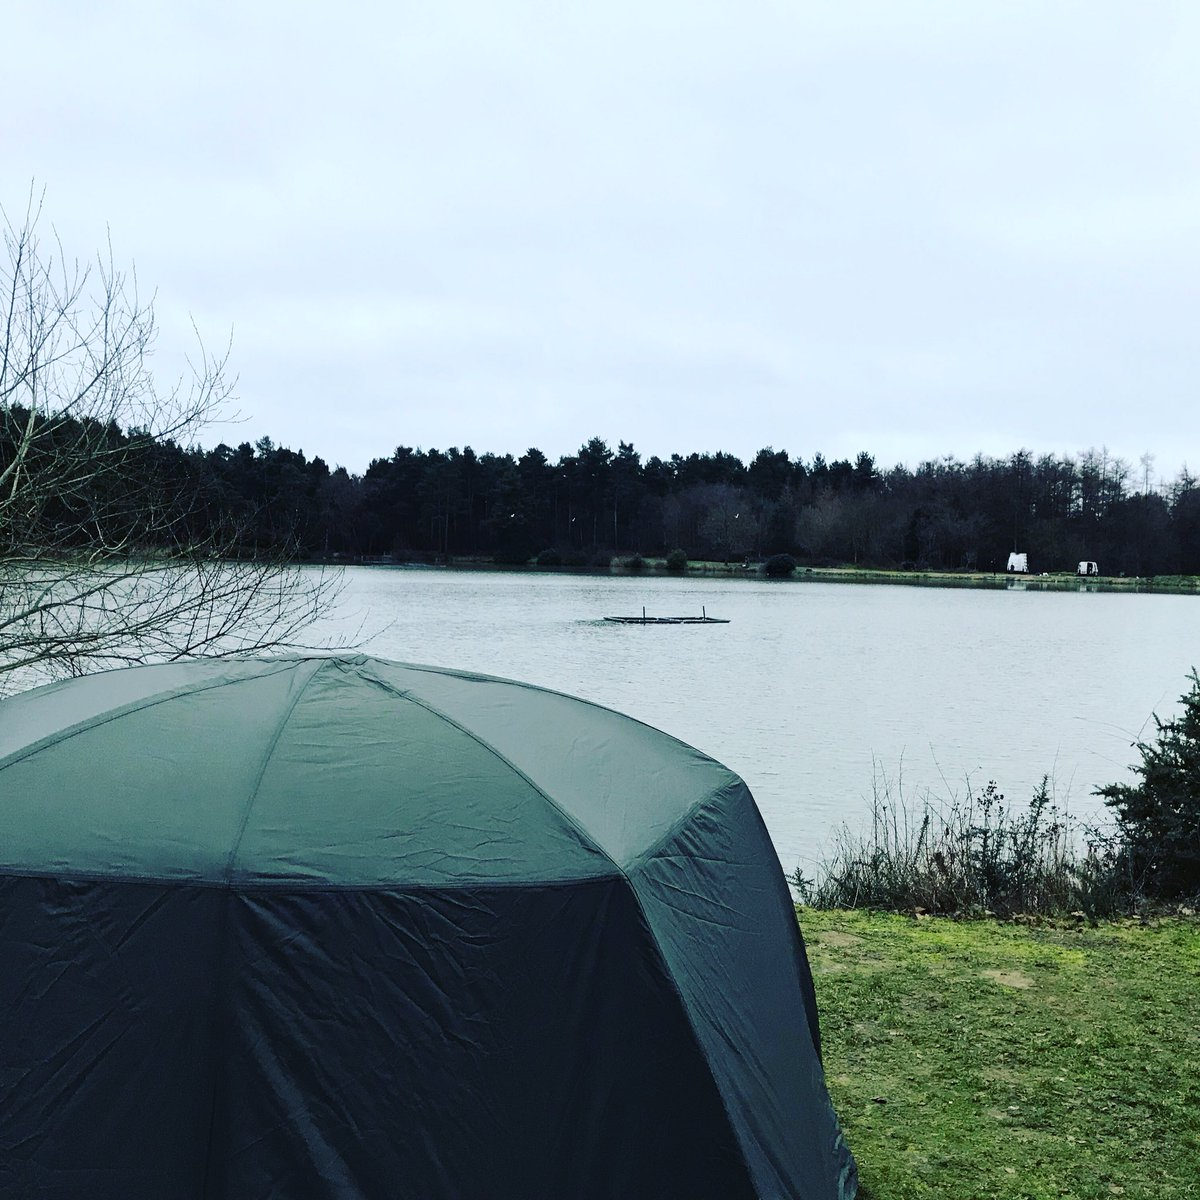 Home for next 36hr #carp #carpfishing #<b>Winter</b>carp #whitevane https://t.co/ABcMKC8q3R